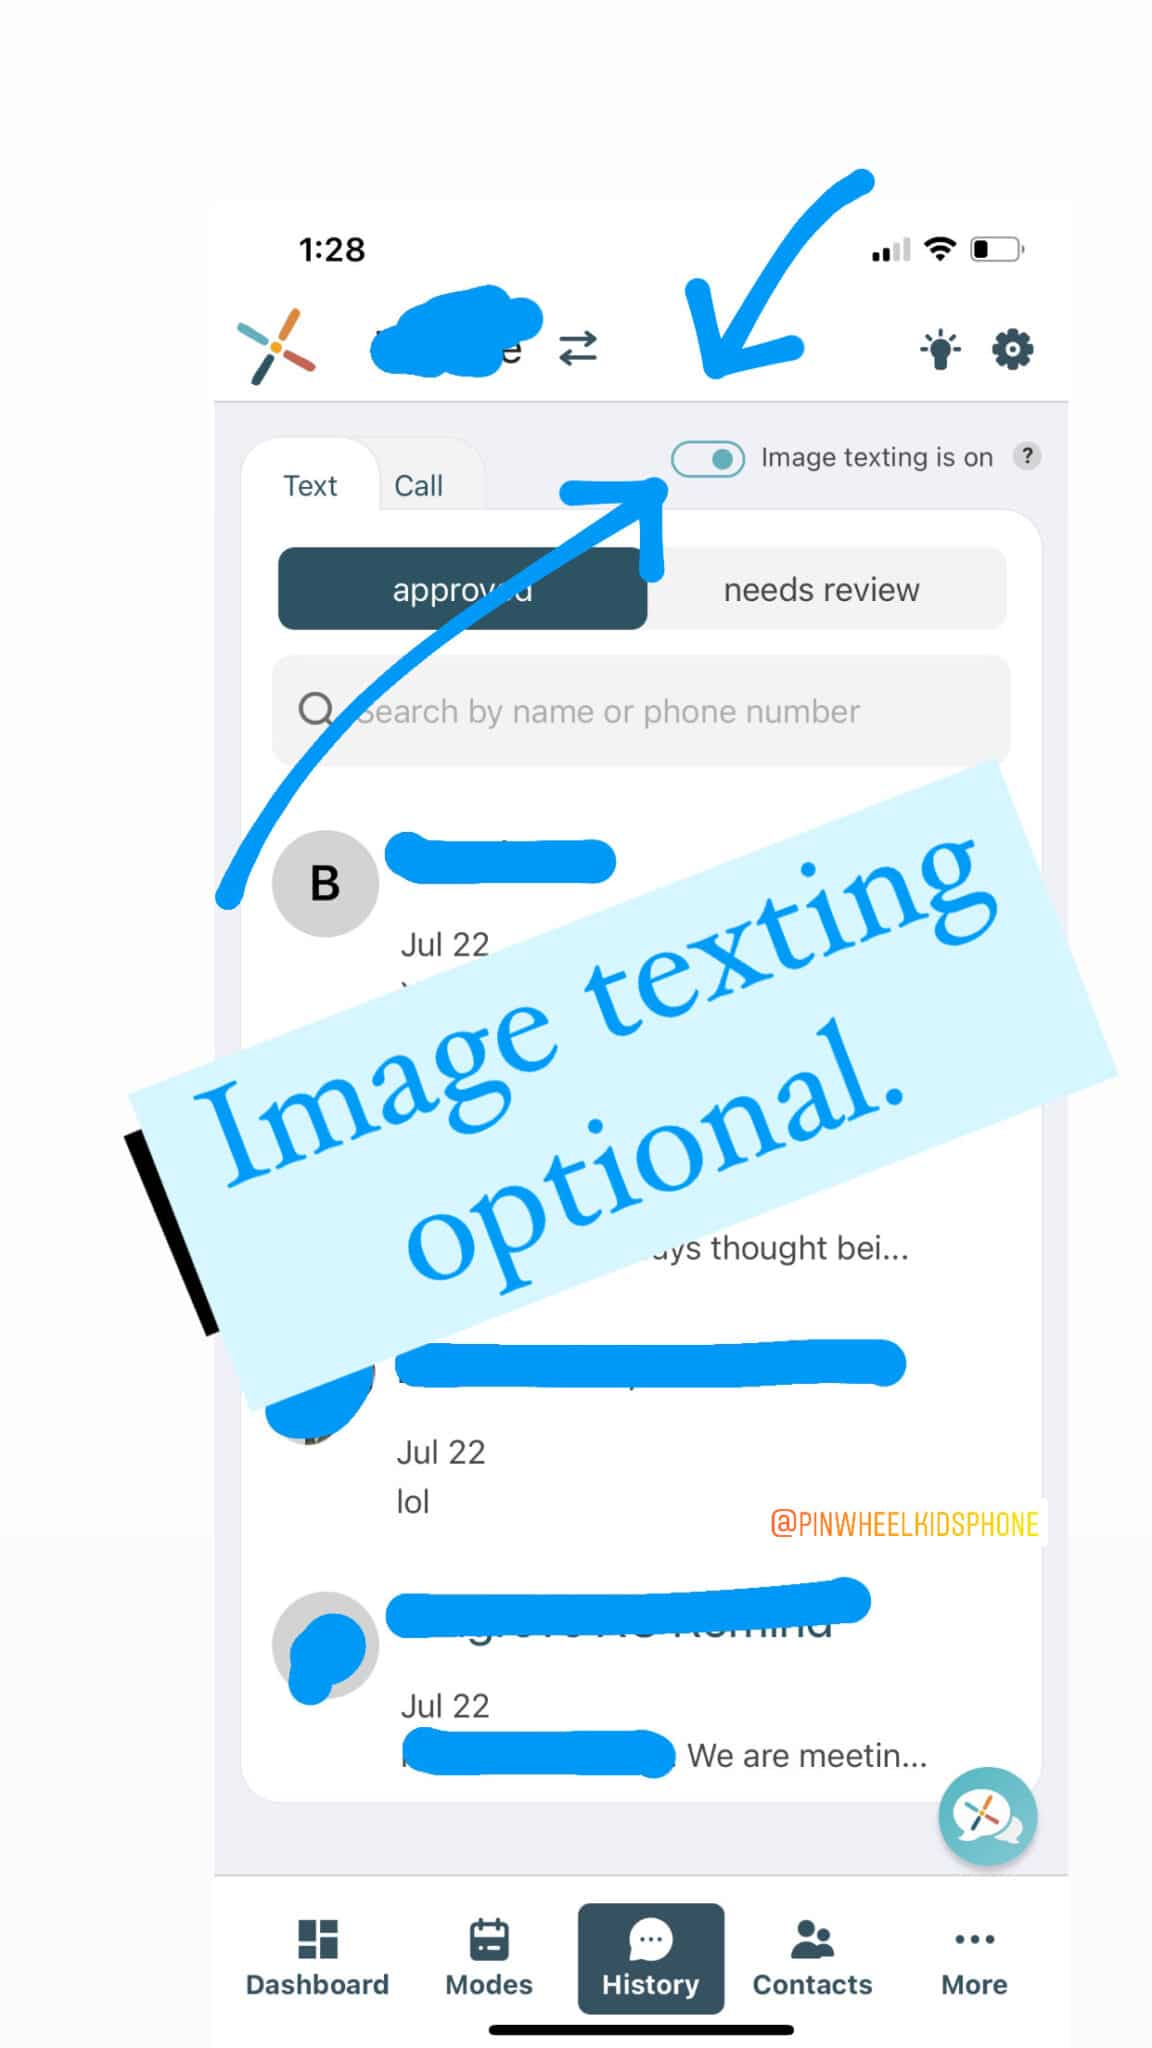 pinwheel phone image texting can be turned on or off